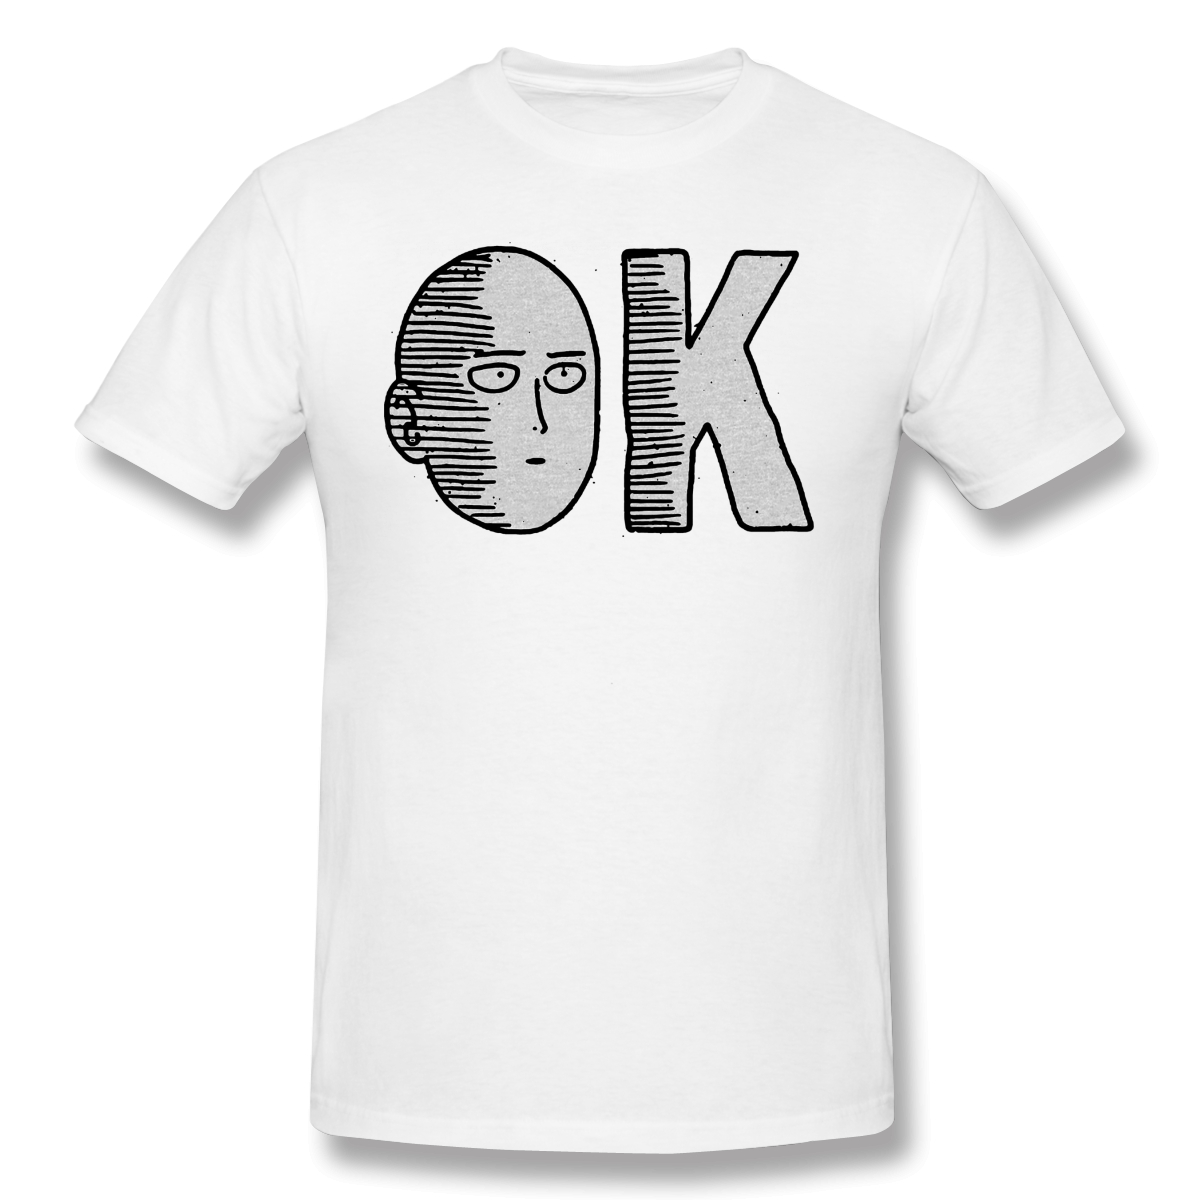 ONE PUNCH MAN Adventure Cartoons T-Shirts For Men OnePunchMan OK Tank Funny Crewneck Cotton Graphic T Shirt Tees Printed